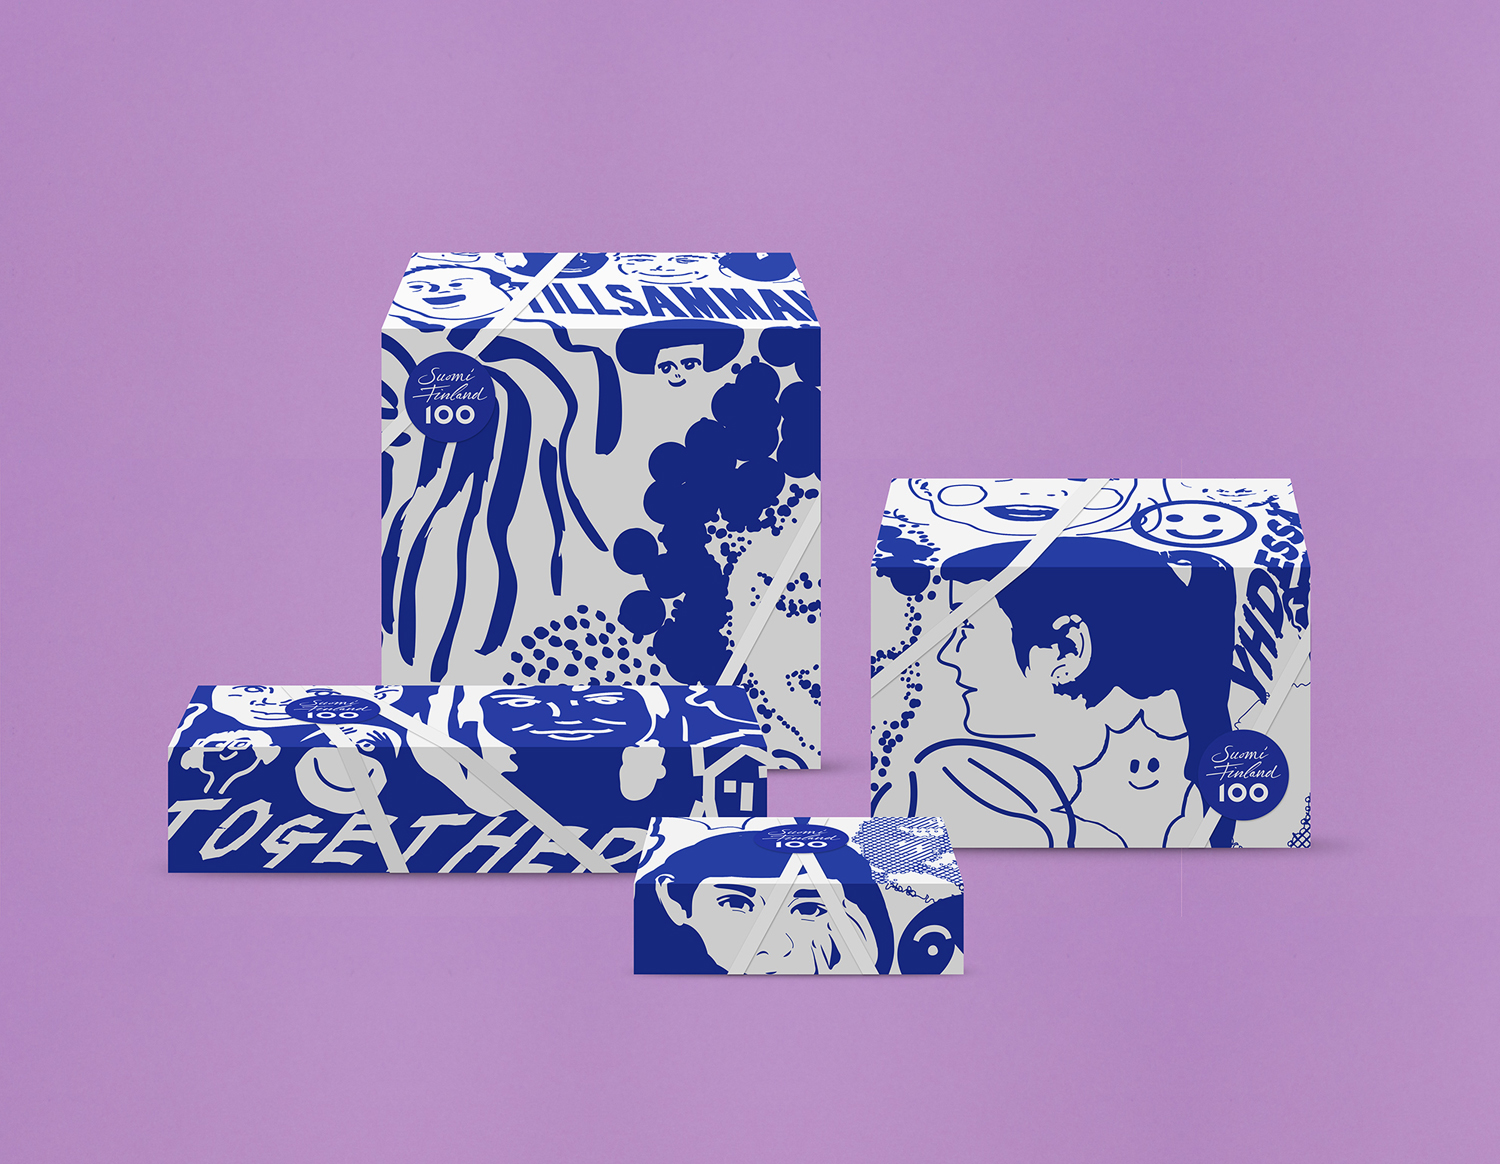 Illustration, print and packaging by Kokoro & Moi for the celebration of Finland's centenary